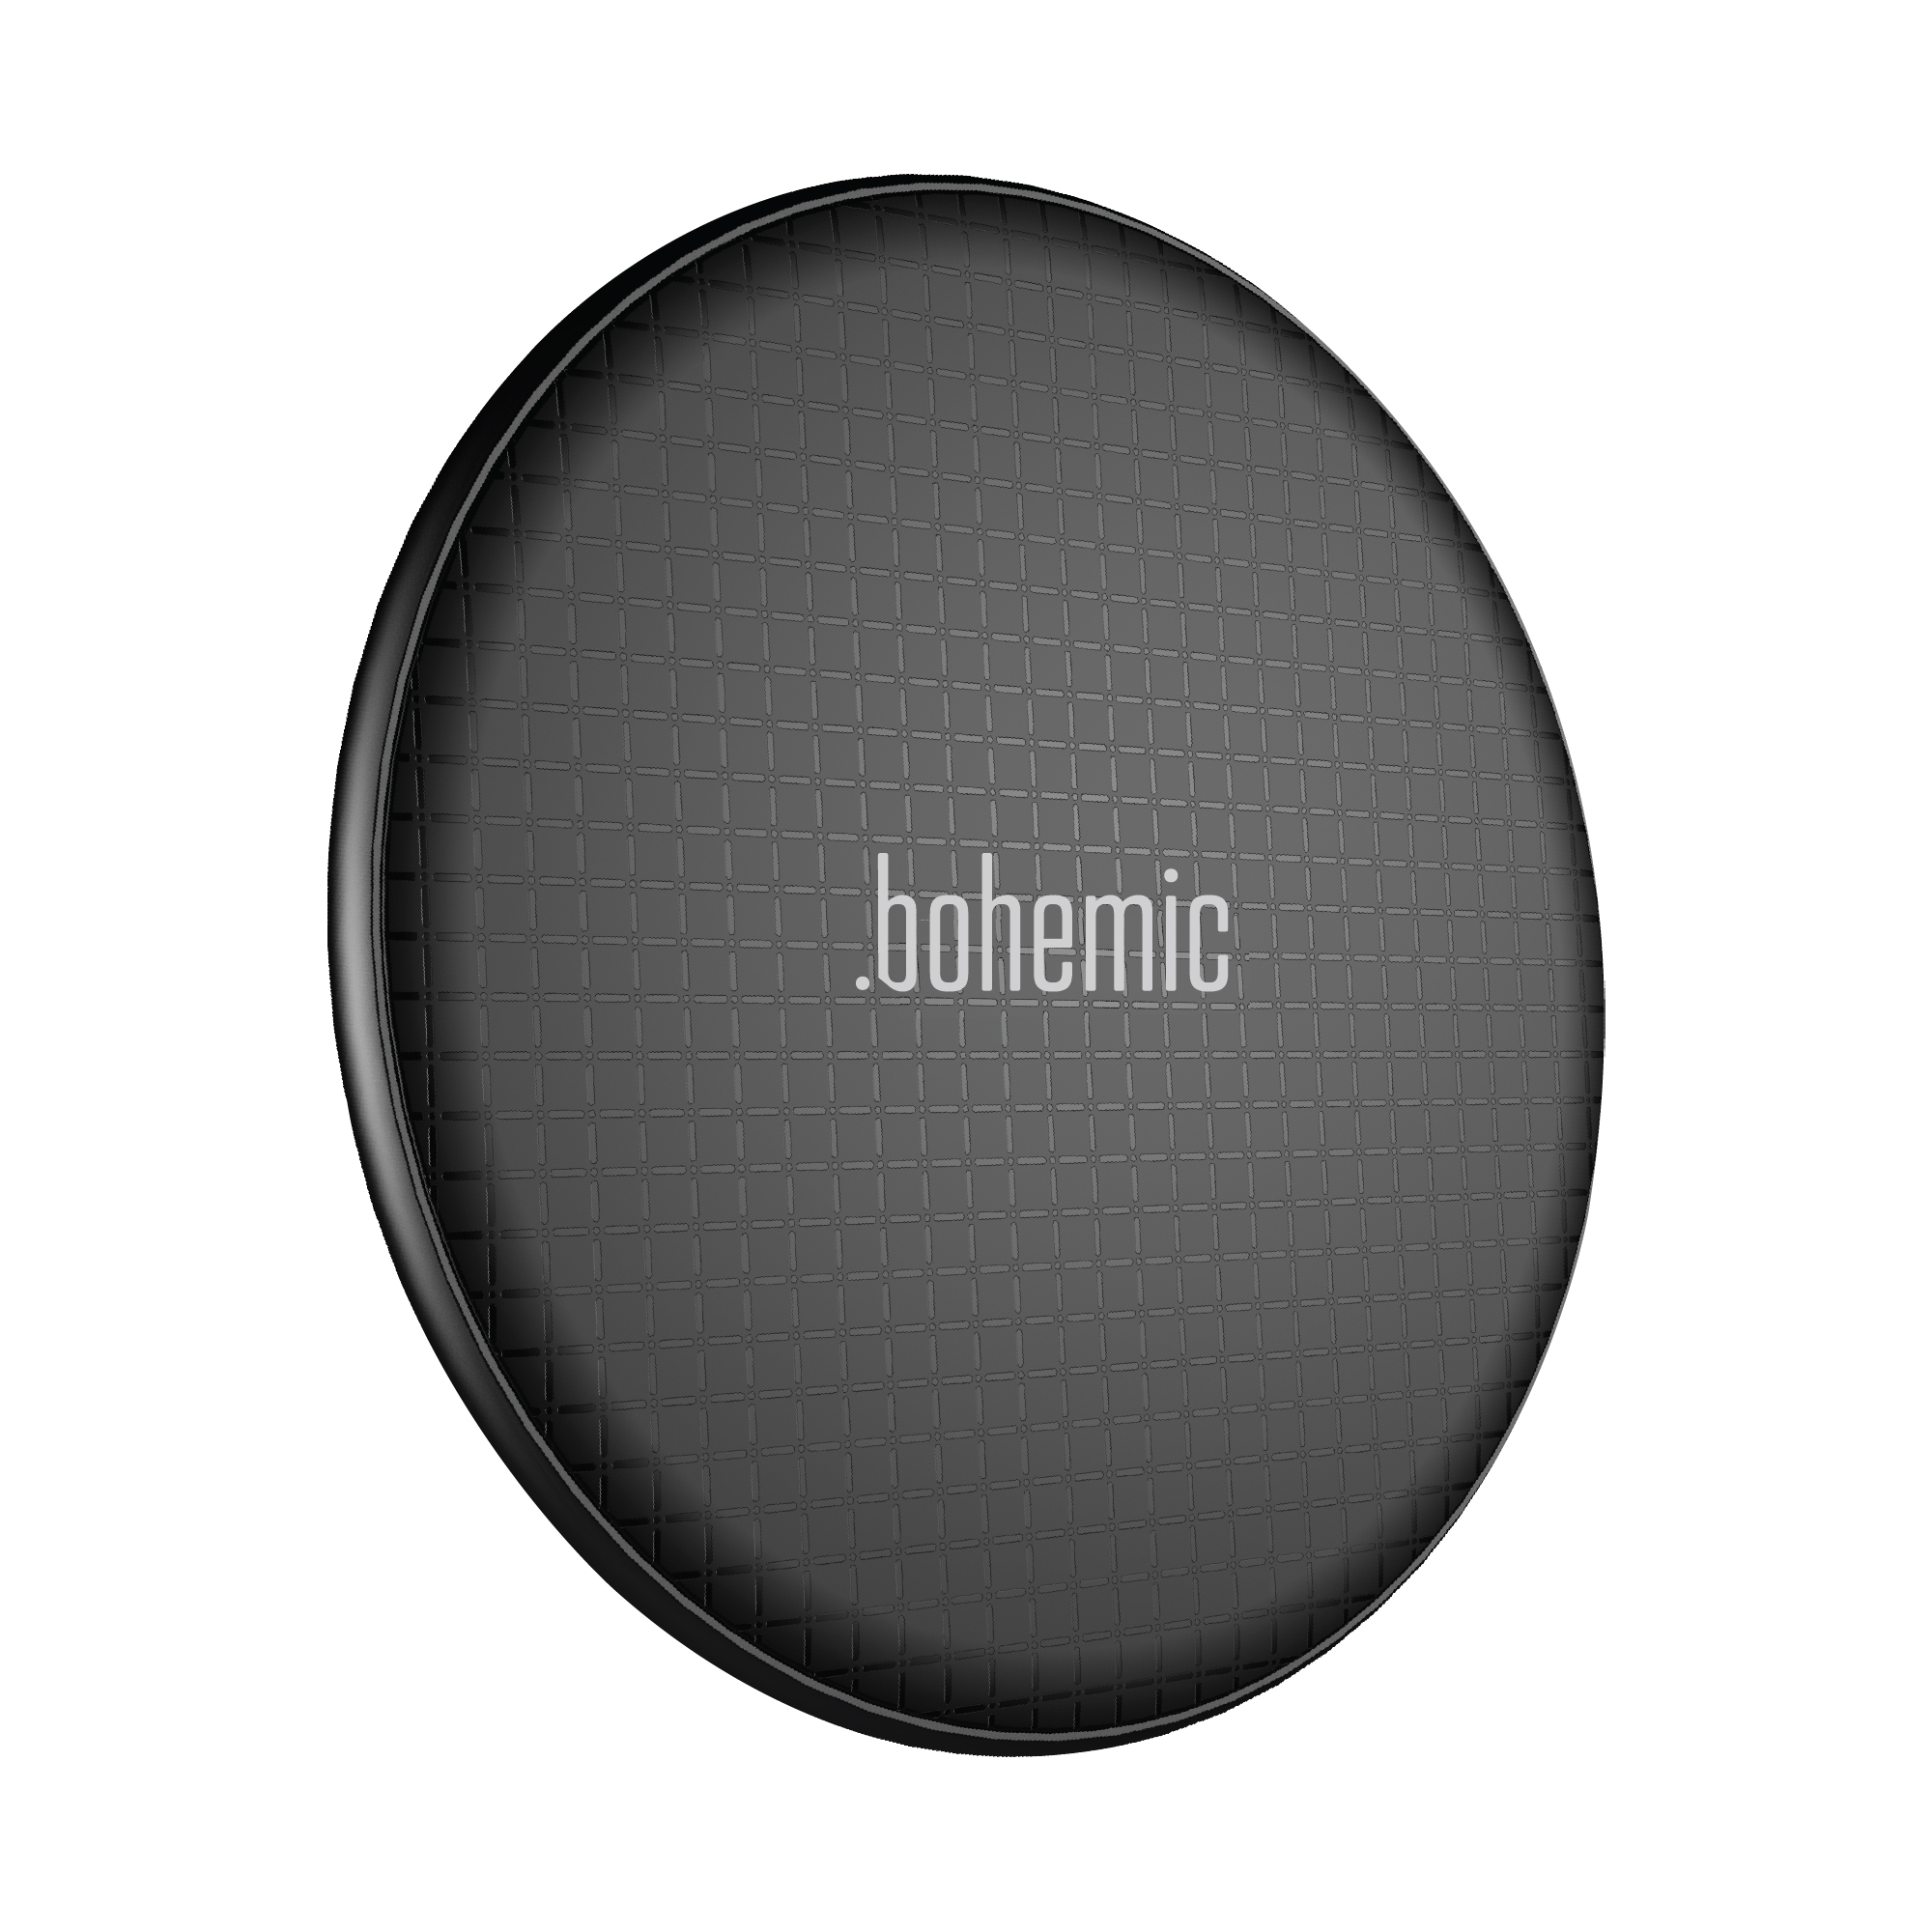 Bohemic BOH7276: Base de carga inalámbrica